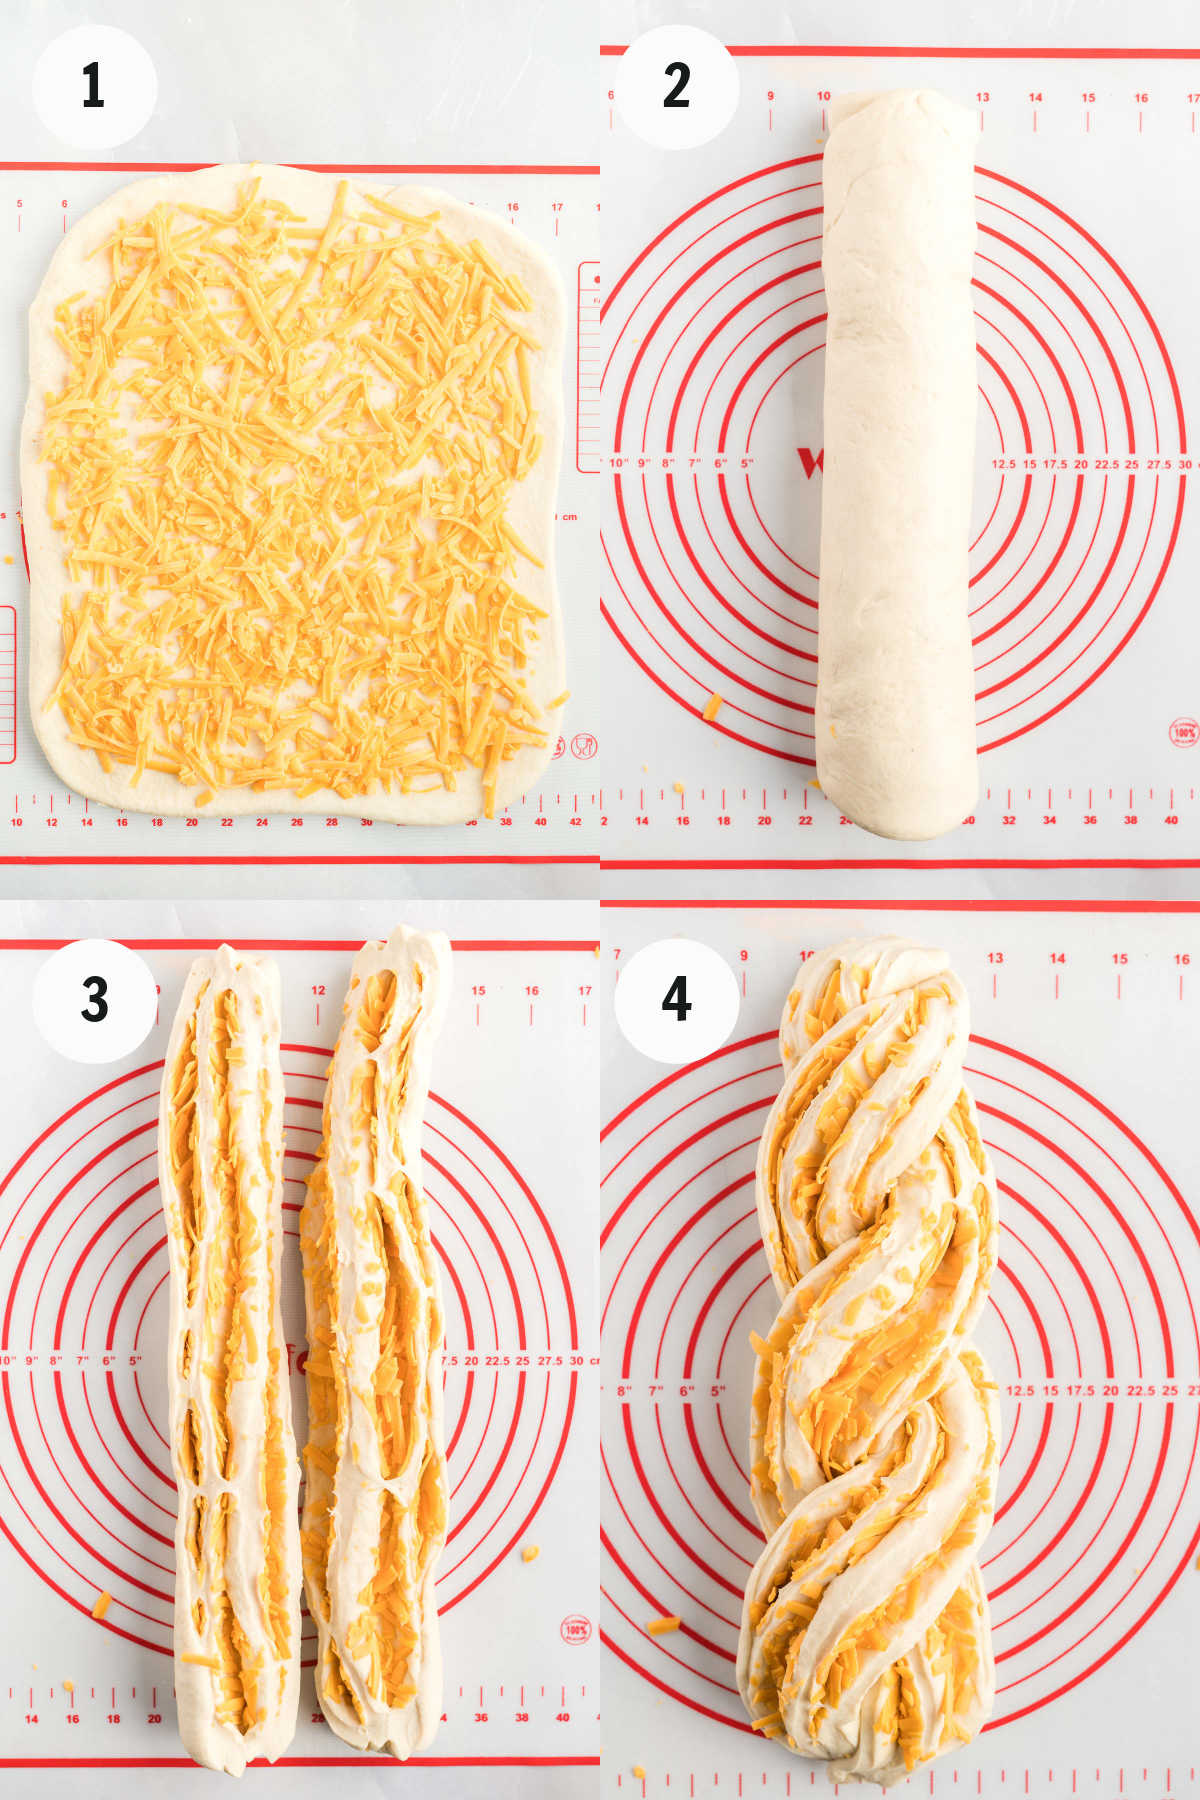 Process of filling dough with cheese, rolling and twisting.